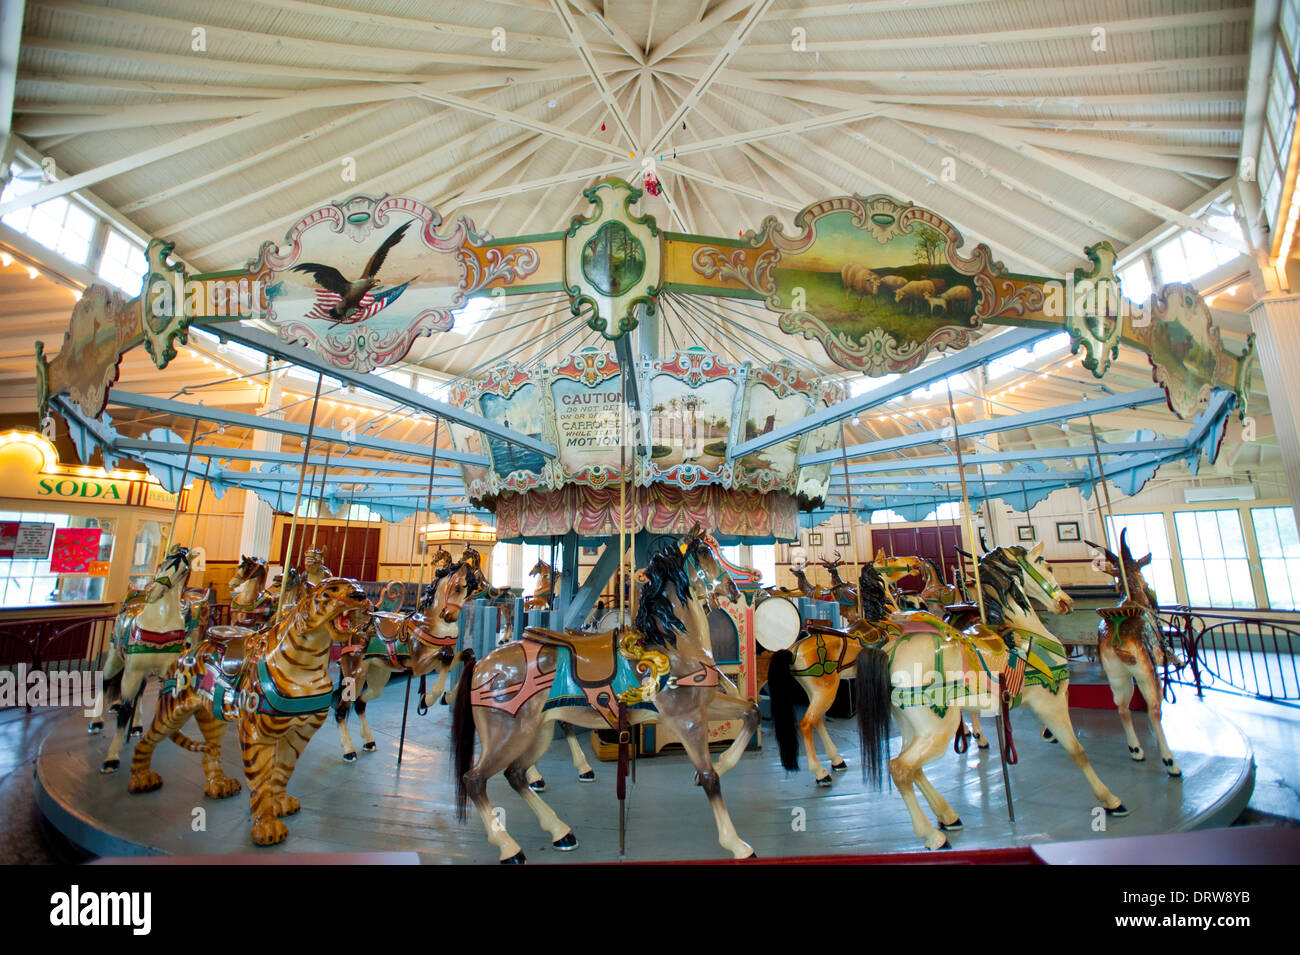 usa-mississippi-ms-miss-meridian-dentzel-carousel-built-in-1896-DRW8YB.jpg